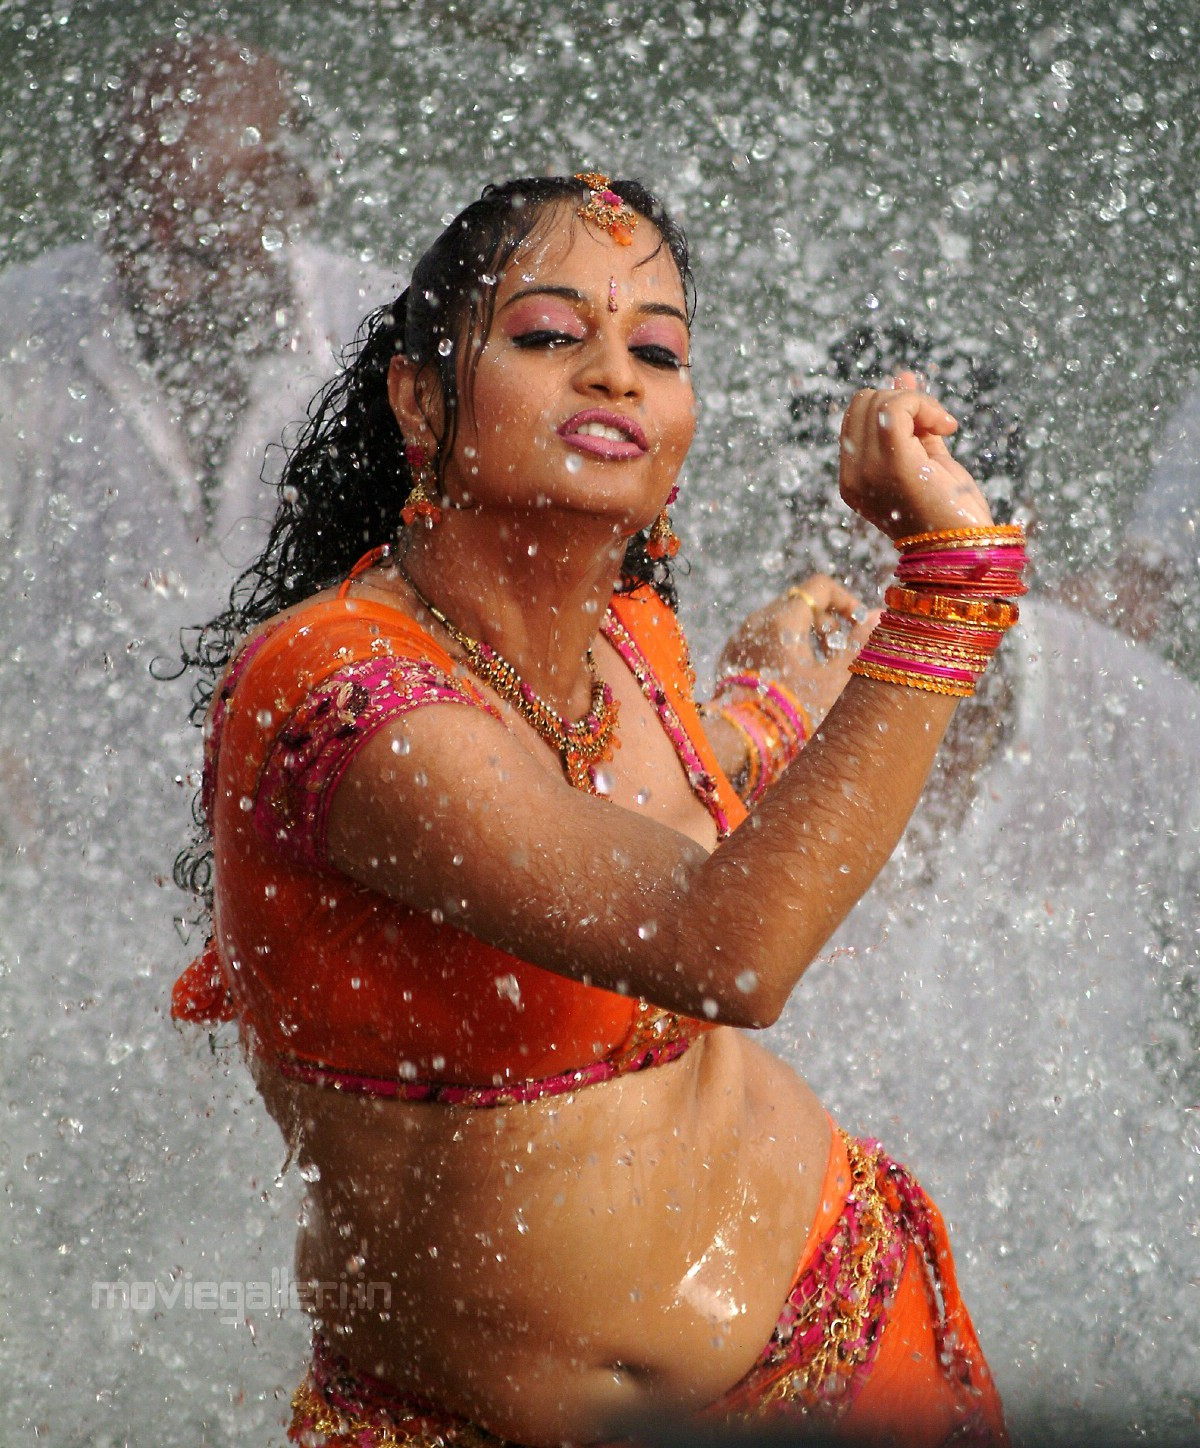 Suja latest hot wet stills suja hot wet photos suja hot pics